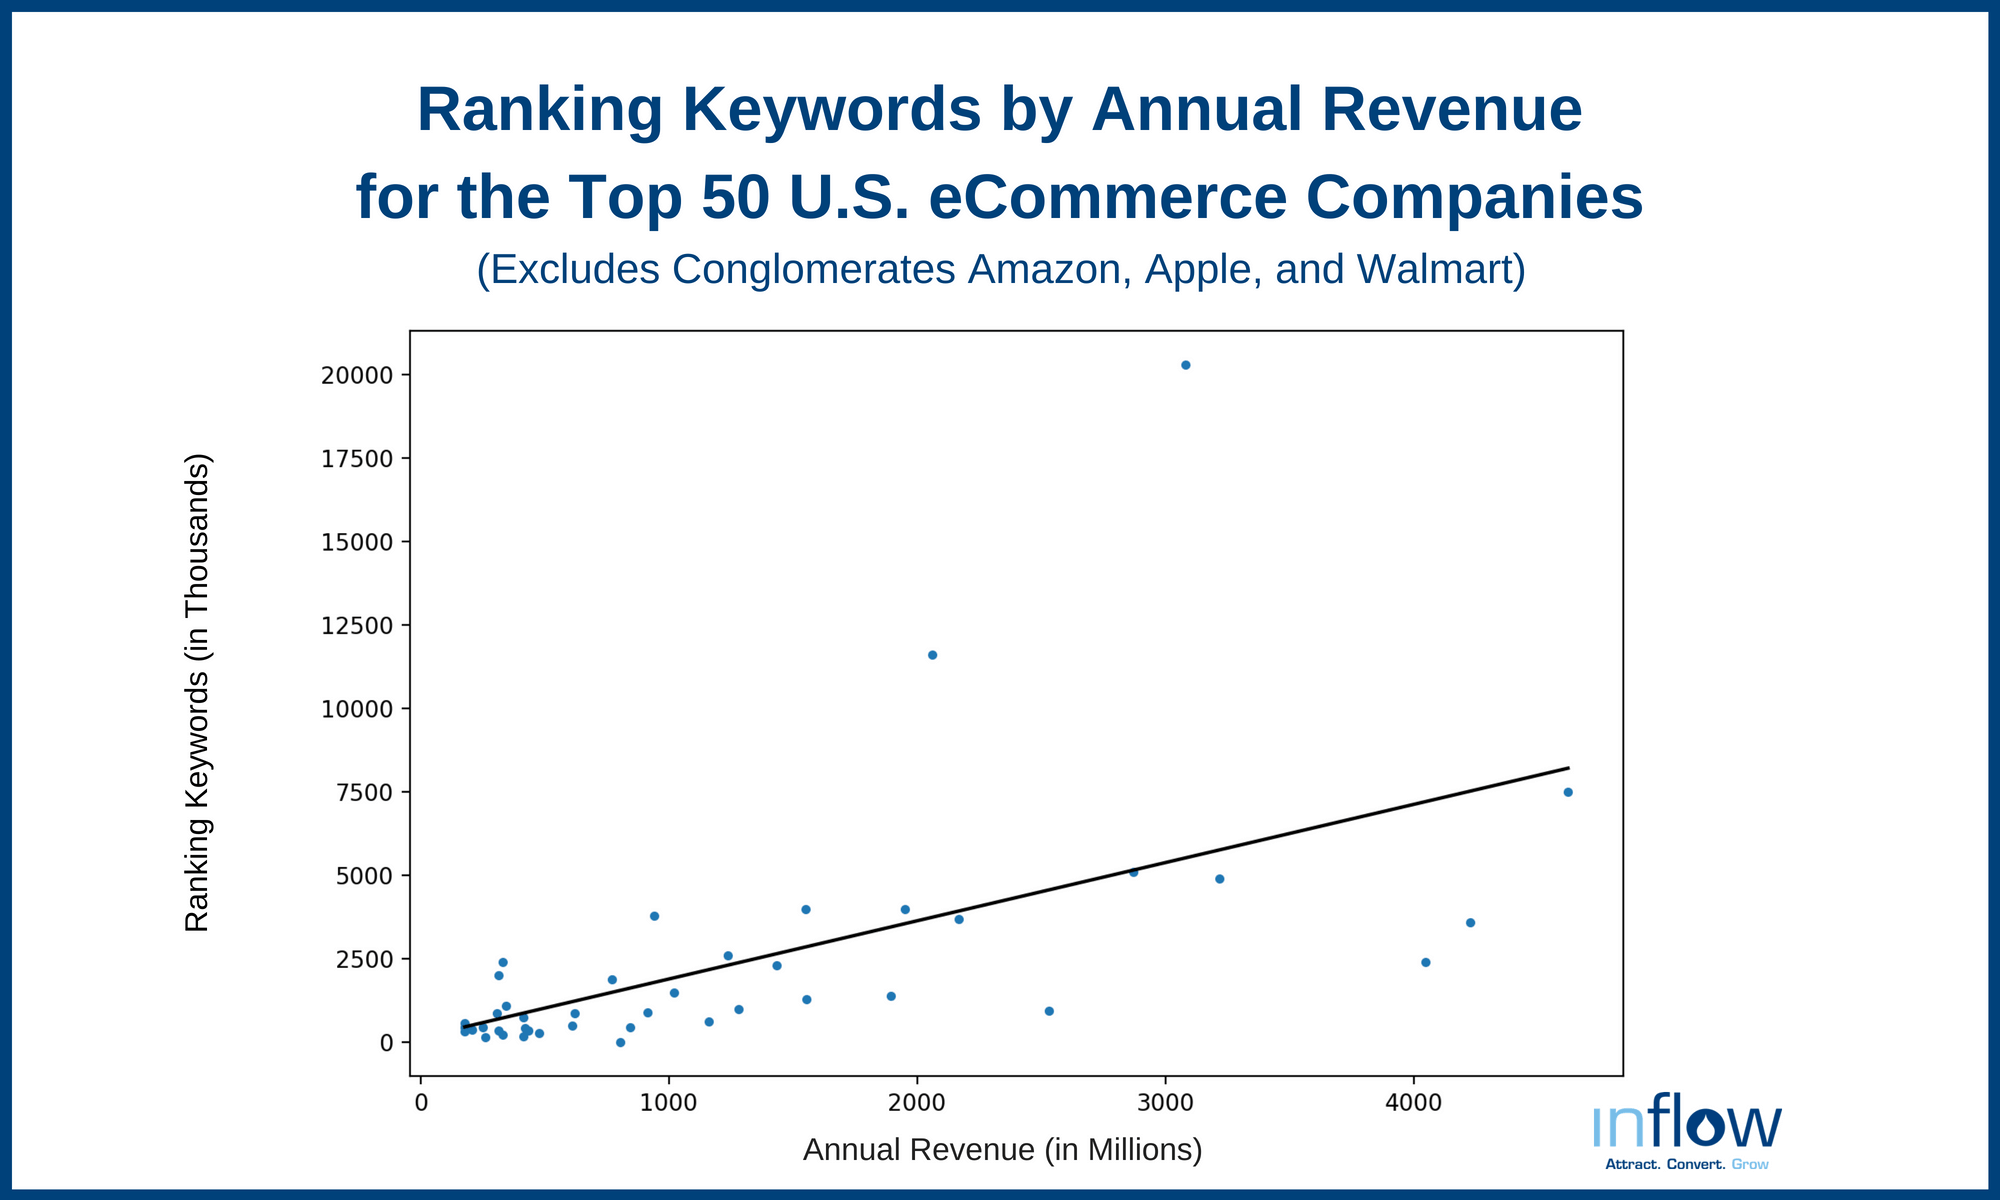 Ranking Keywords by Annual Revenue for the Top 50 U.S. eCommerce Companies